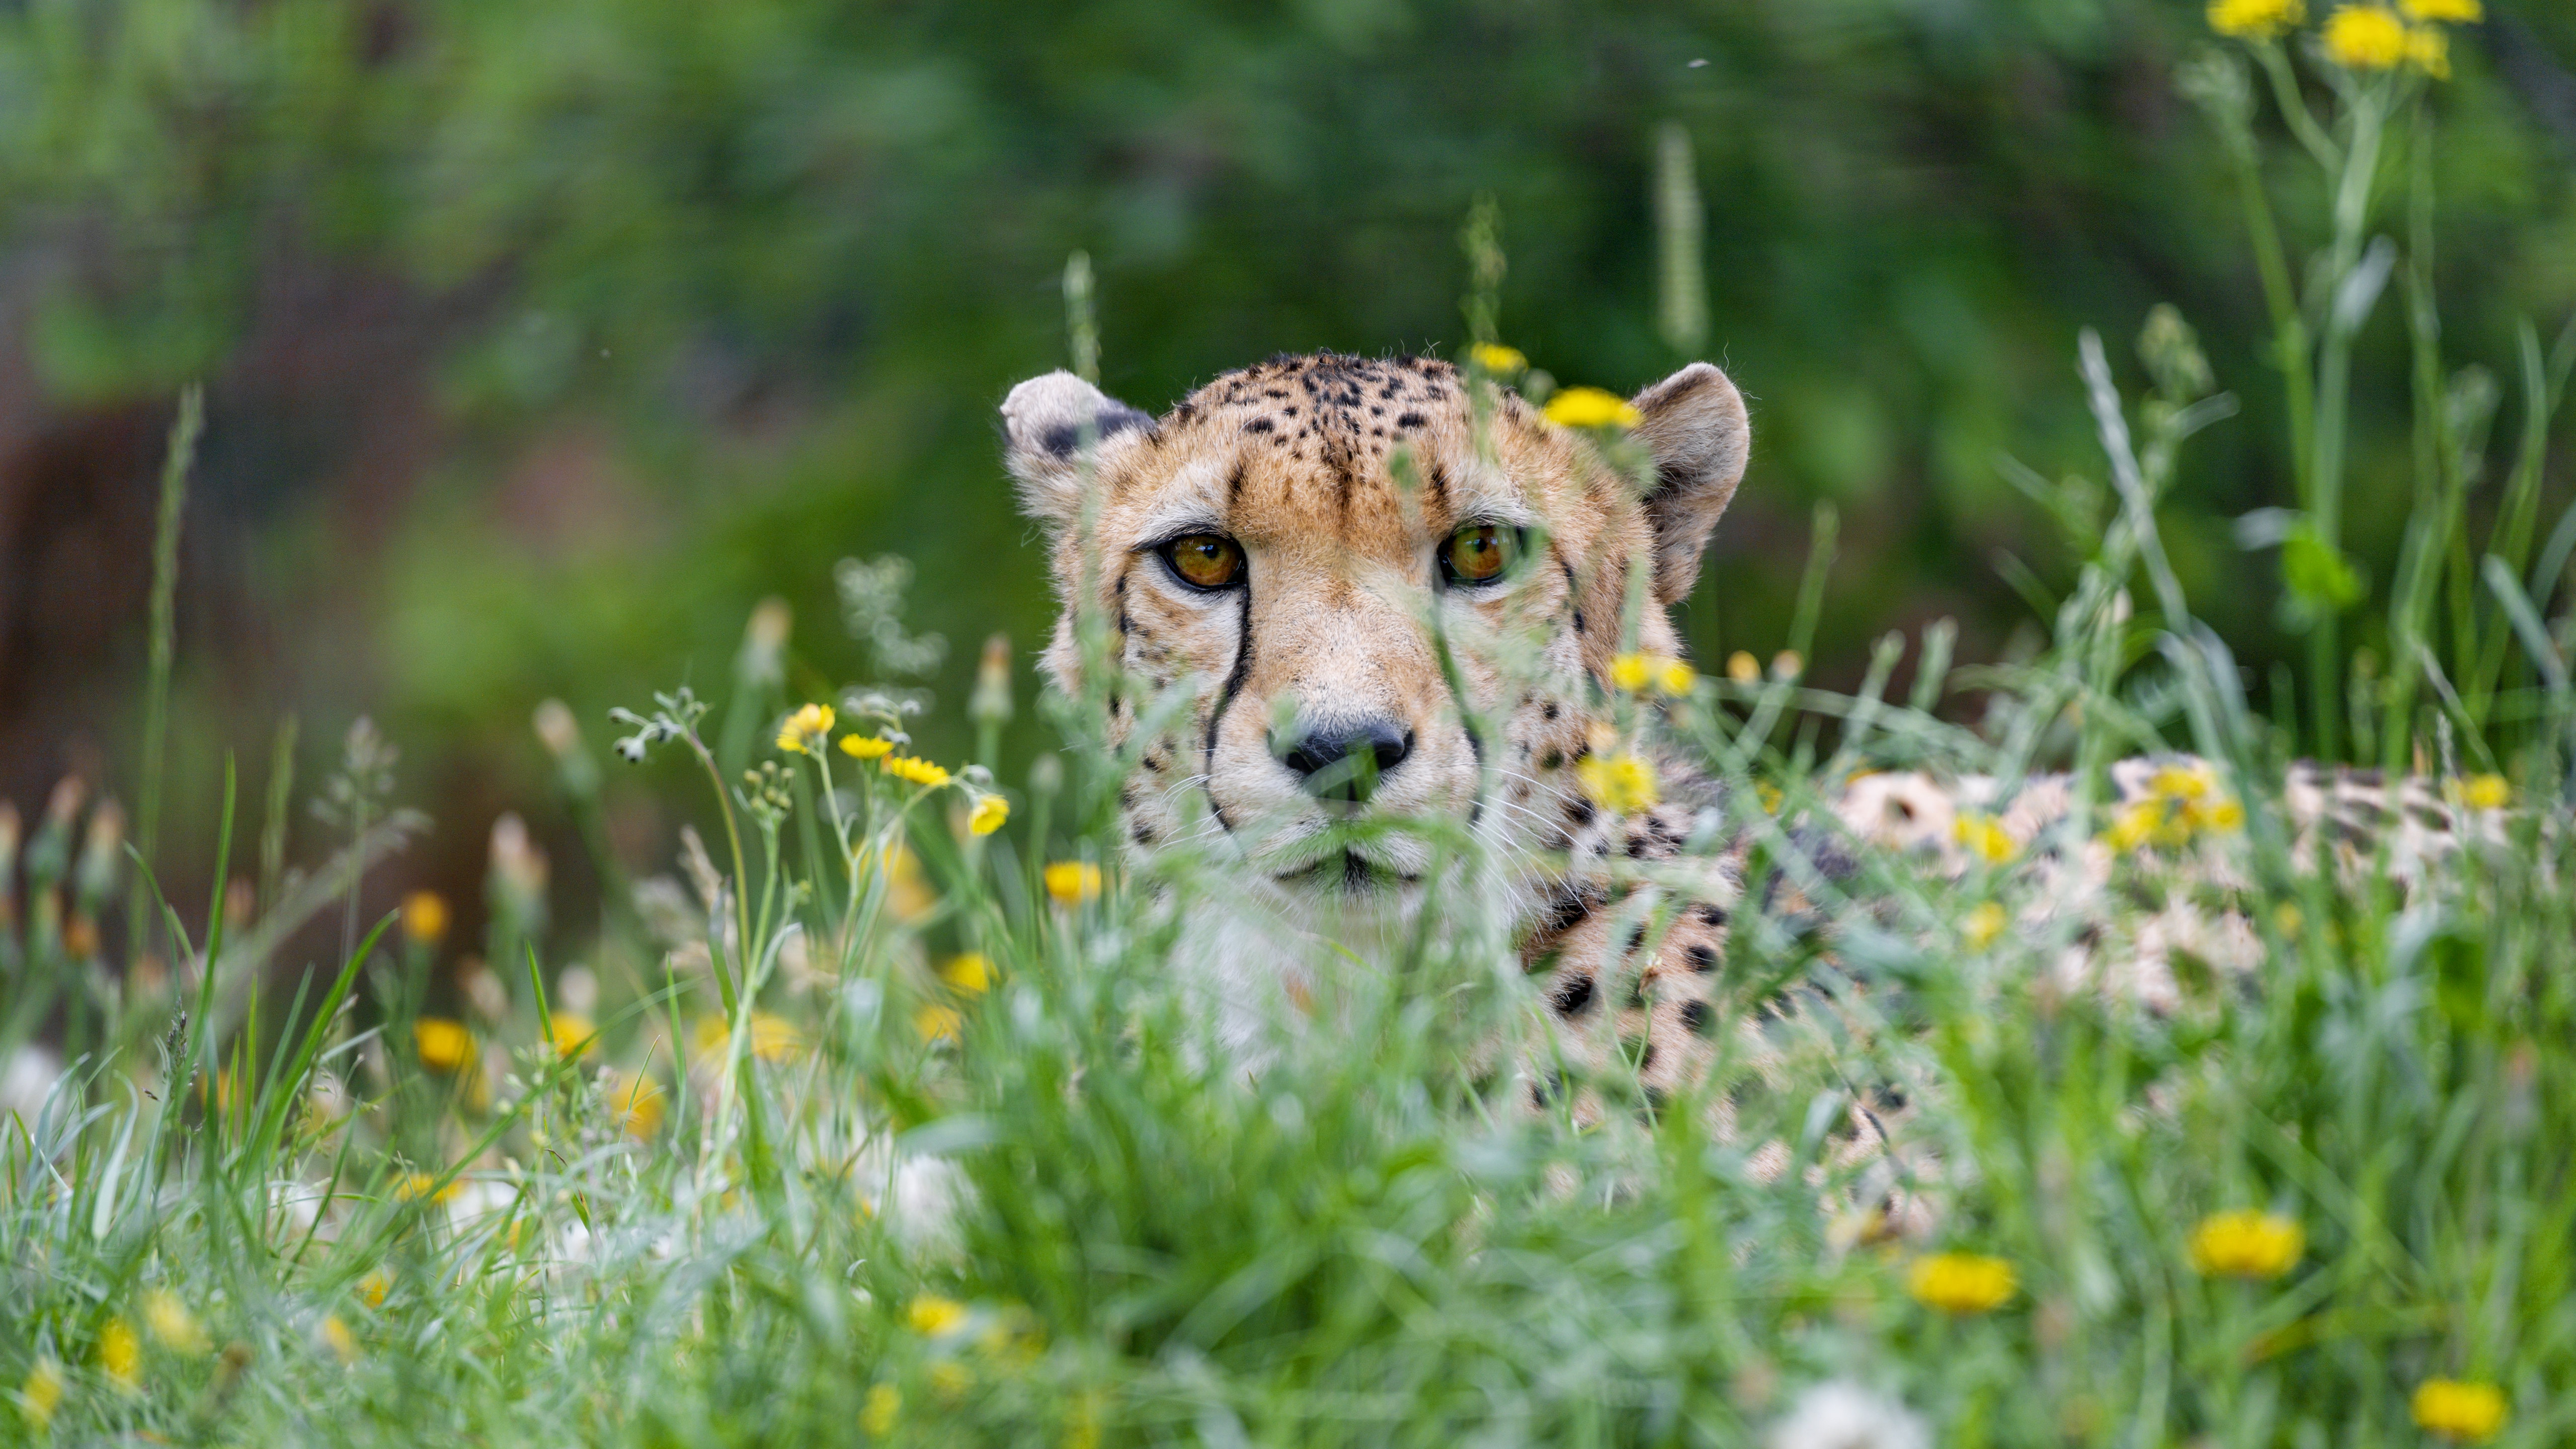 118341 download wallpaper Animals, Grass, Cheetah, Predator, Big Cat, Sight, Opinion screensavers and pictures for free